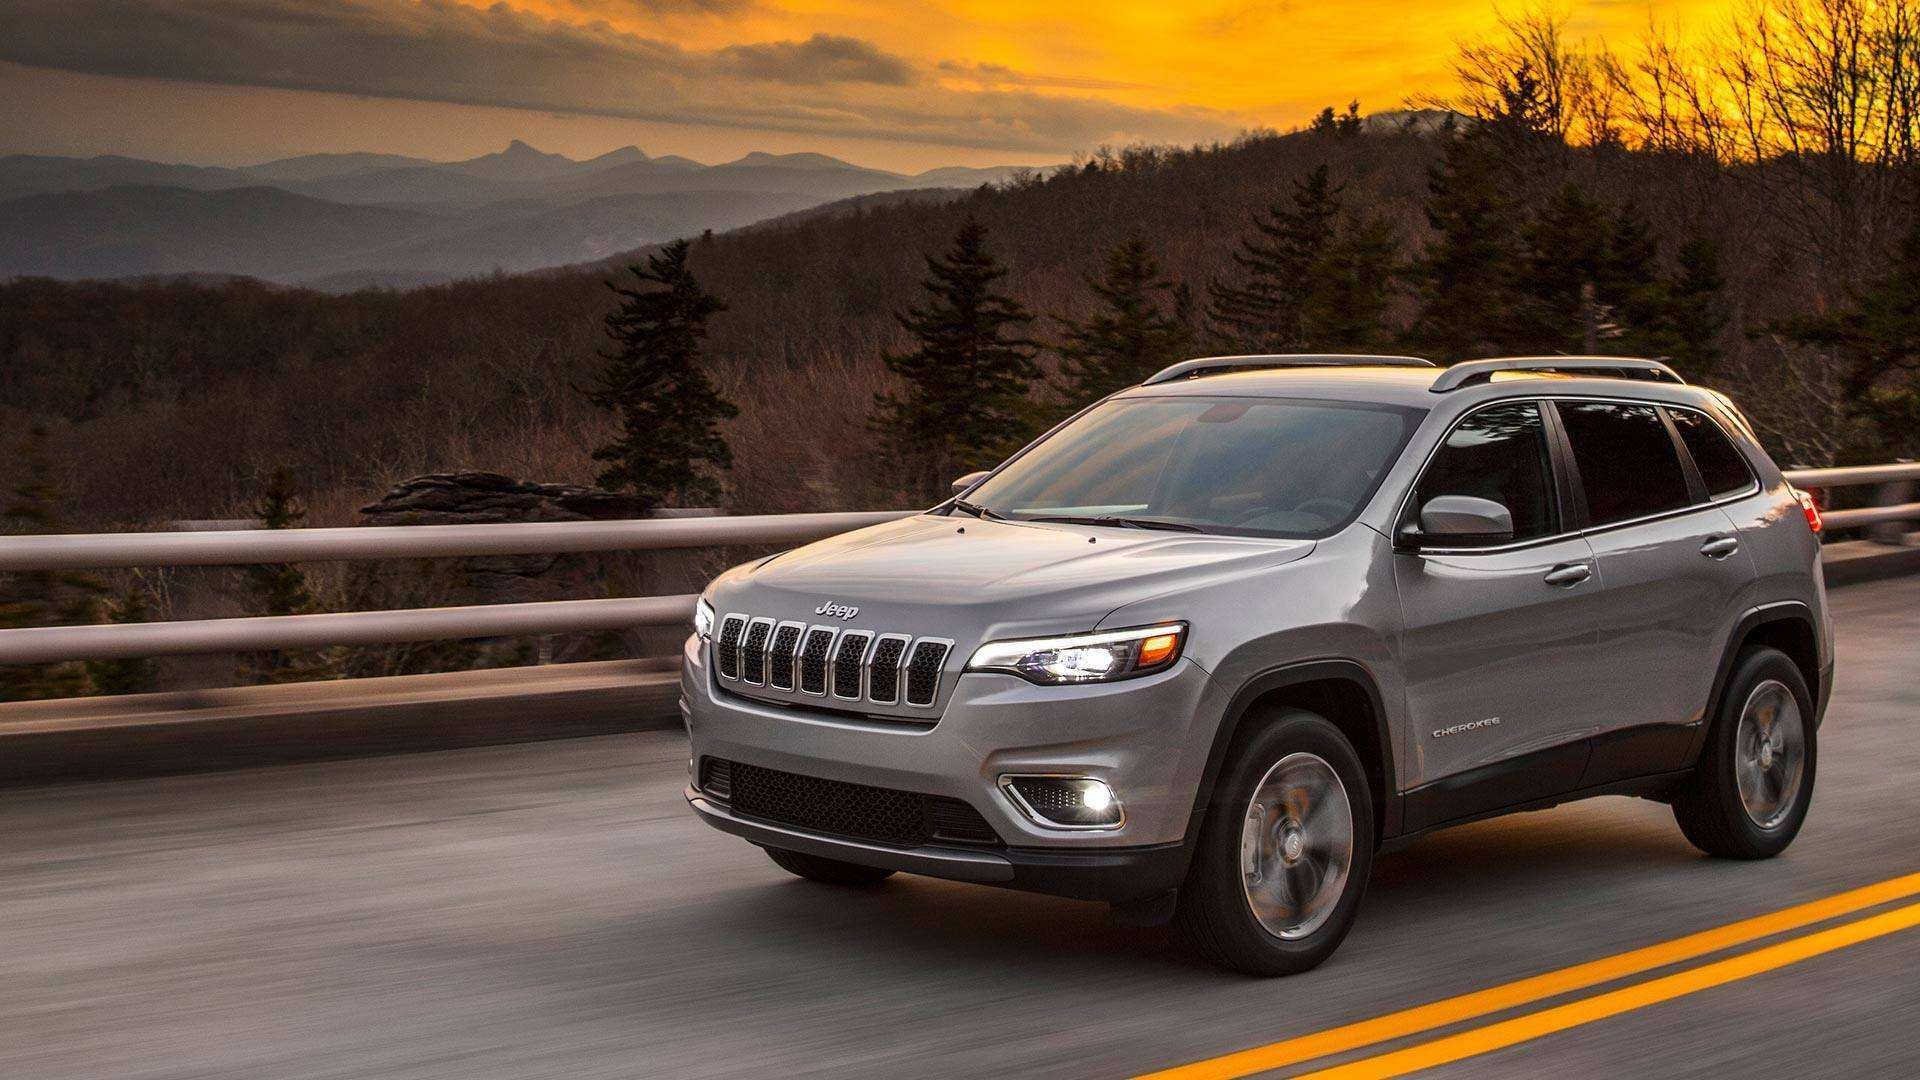 25 Concept of 2019 Jeep Cherokee Kl Overview for 2019 Jeep Cherokee Kl